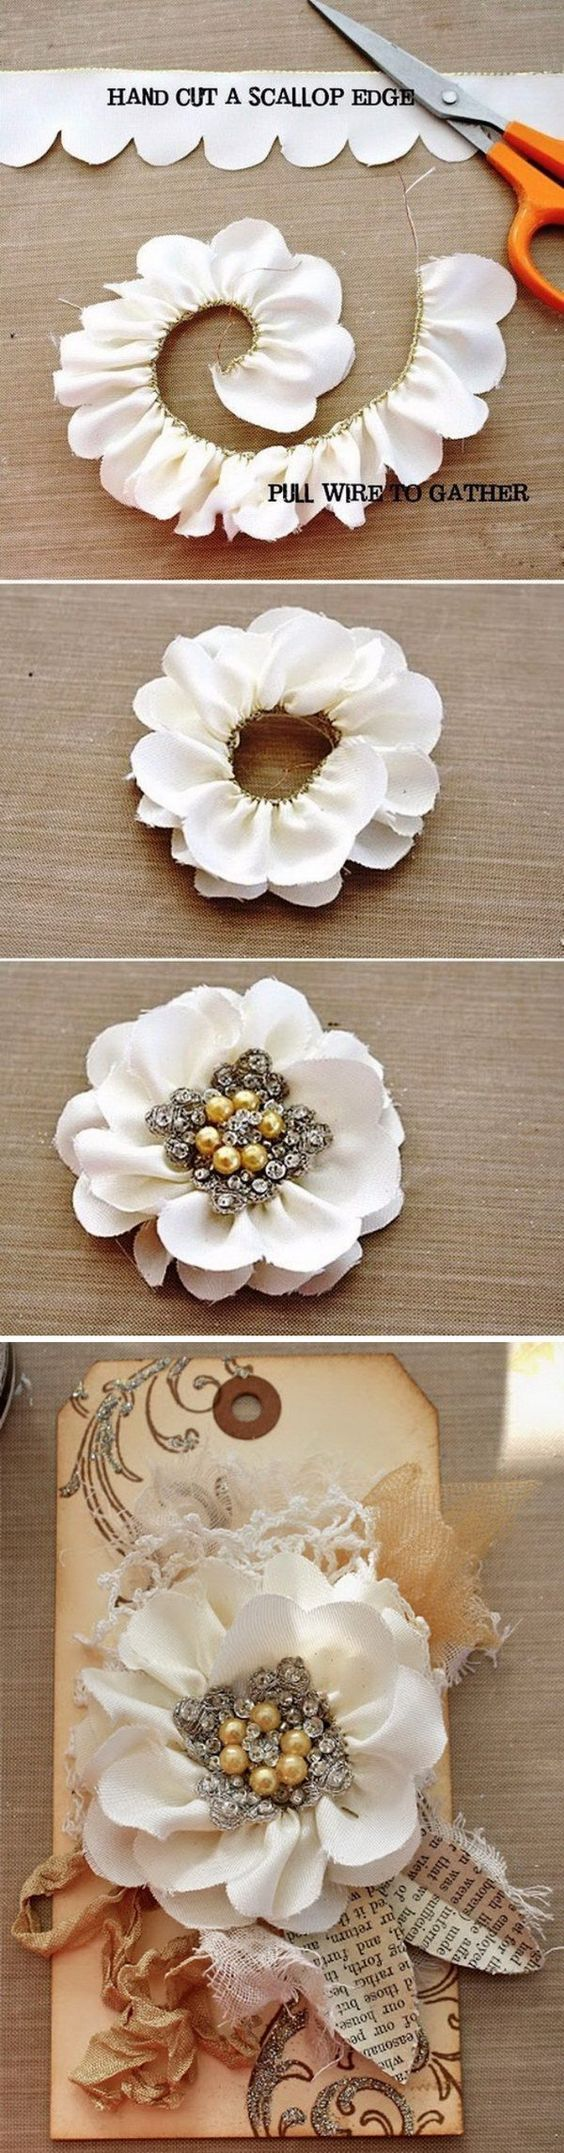 scalloped edge shabby chic decor and diy ideas on pinterest. Black Bedroom Furniture Sets. Home Design Ideas